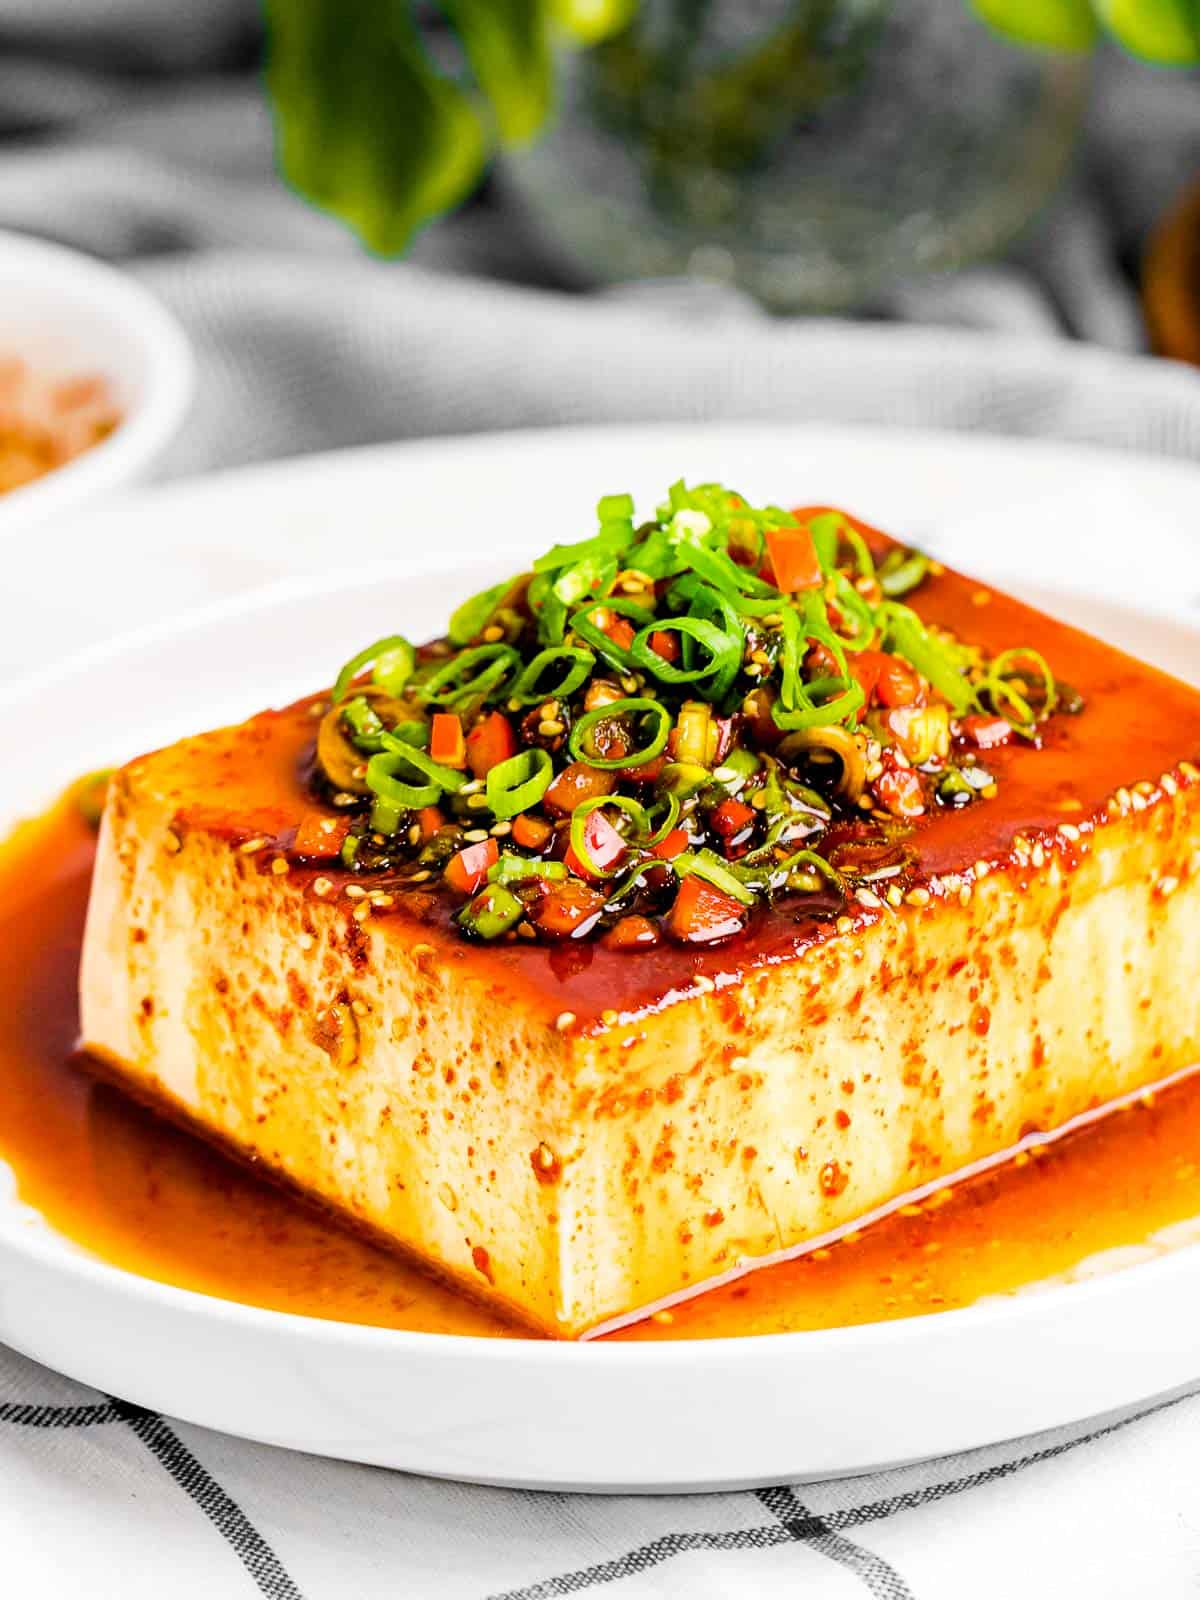 Silken tofu with easy Asian soy sauce made with green onions, red pepper flakes, and soy sauce in a white bowl.